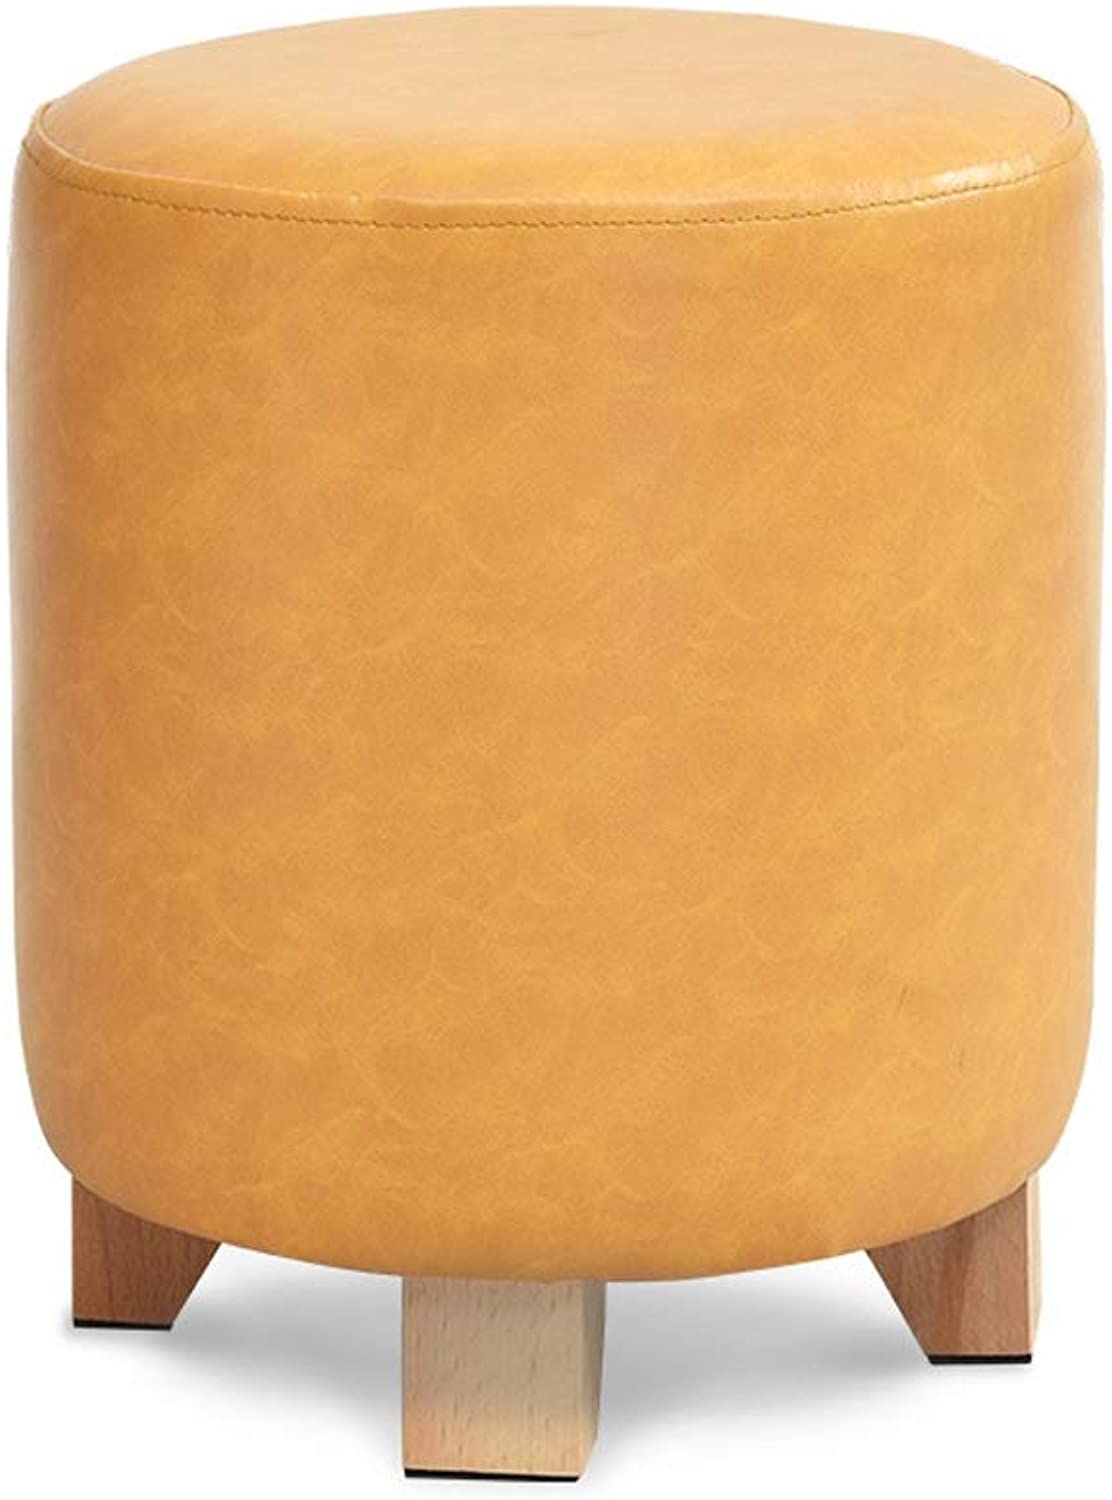 WSJTT Footrest Stool PU Leather Small Chair Seat Couch,Solid Wood Sofa Stool,Leather Stool,Creative shoes Bench,Multi-Functional Stool (color   D)